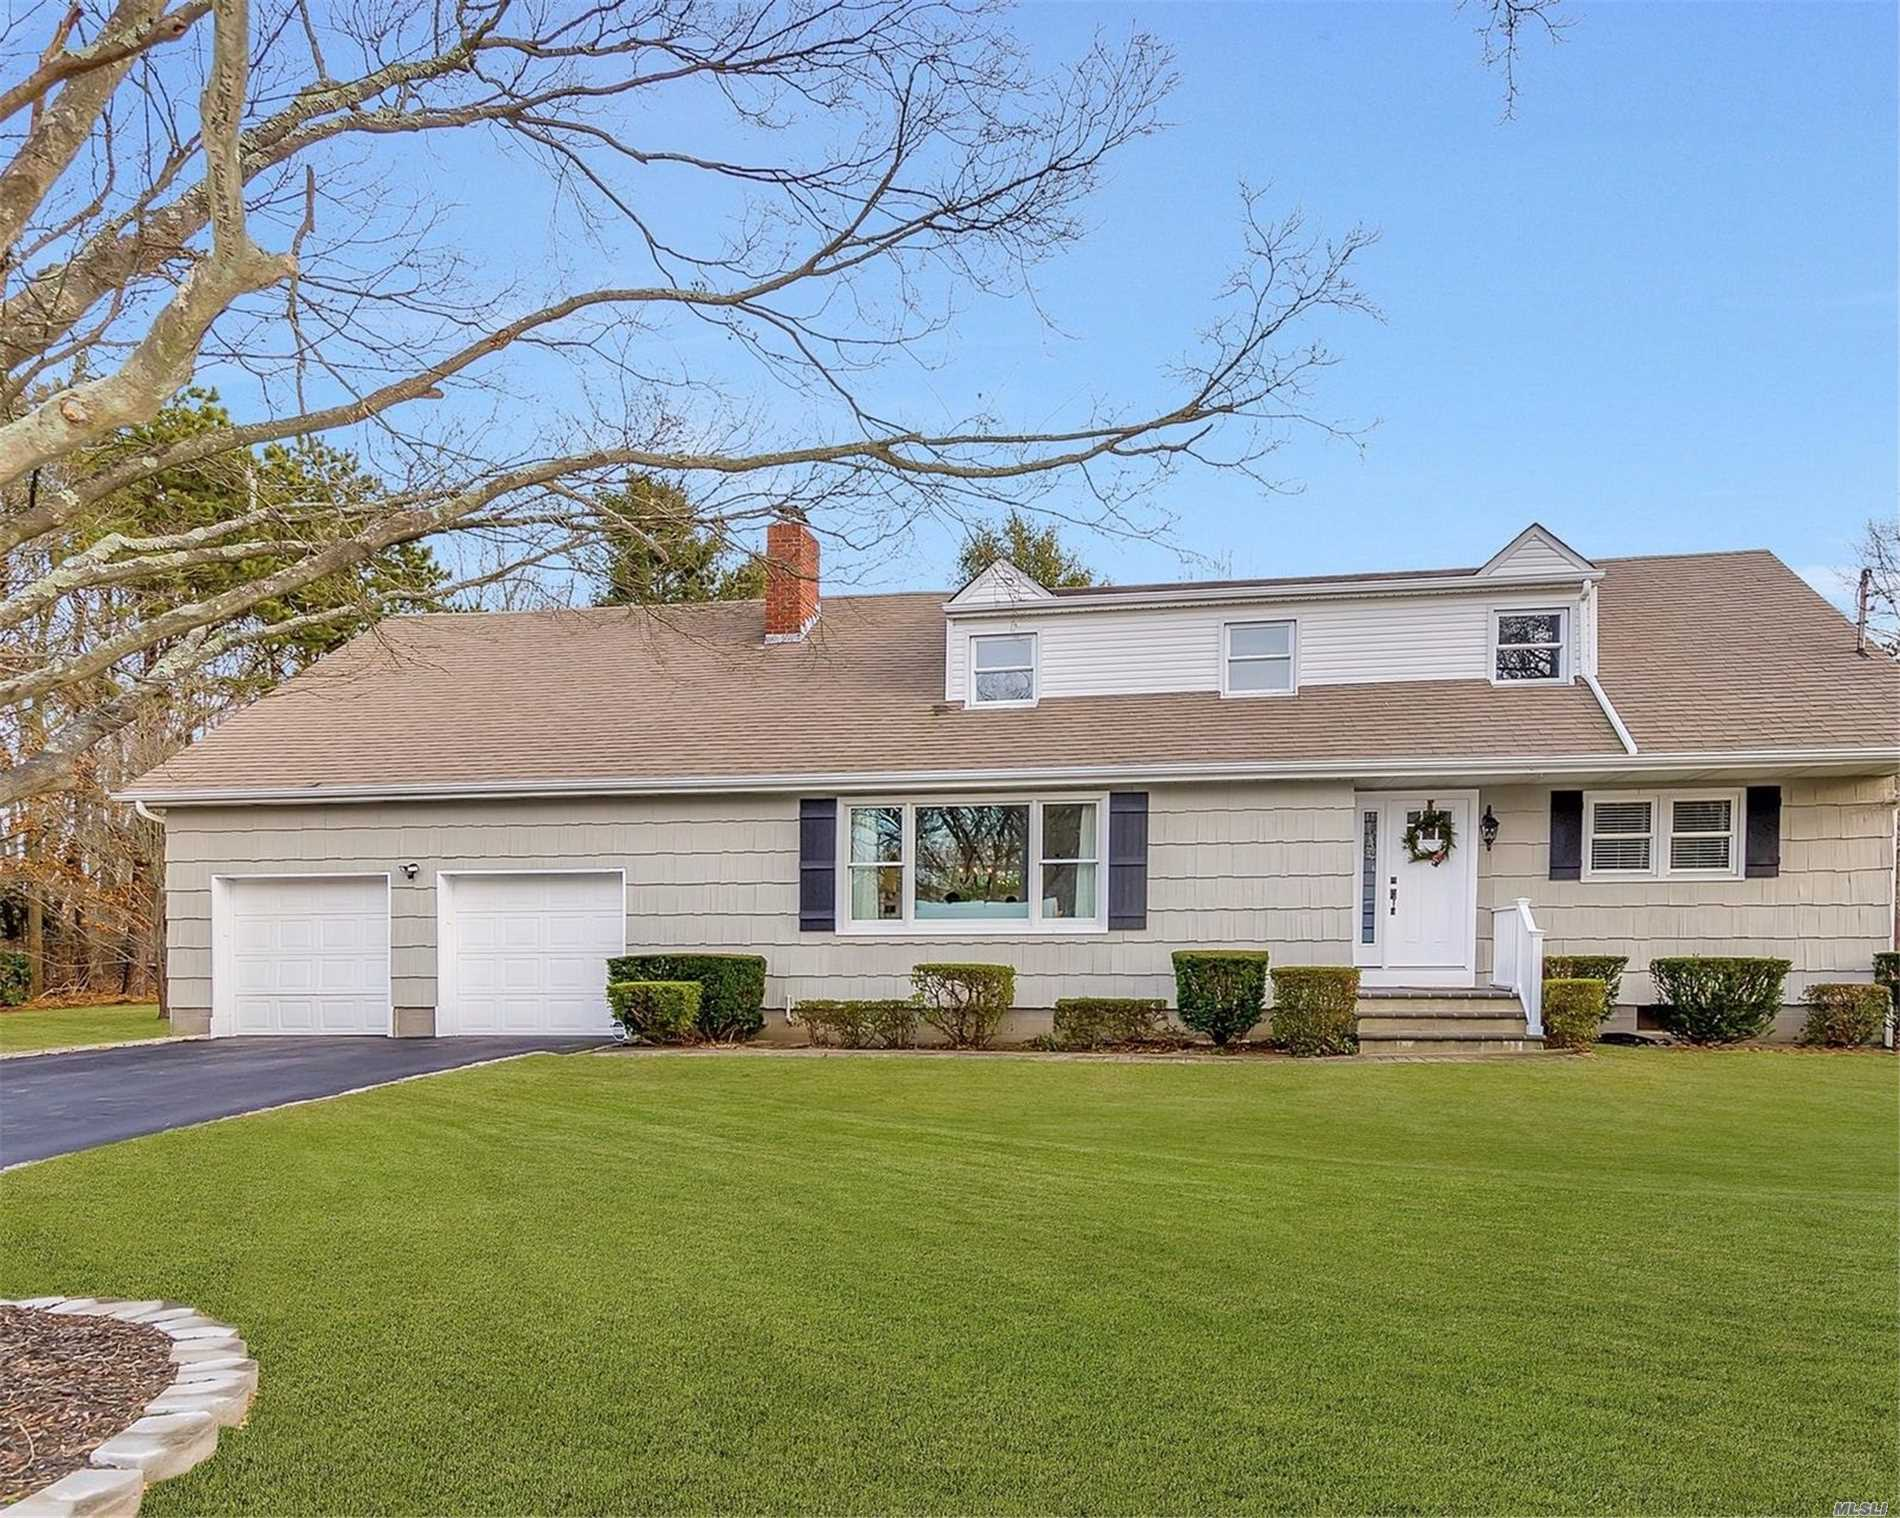 Space & Elegance Take On A Whole New Meaning With This 3018 Square Foot Colonial Home. Tastefully Totally Renovated Offering Space For Everyone Even A Loft For Those Game Enthusiastic's, Or A Place Your Guests Can Spend The Night. Located In A Deeded Beach & Boating Community, So Bring Your Water Toys. Choice Of Three High Schools: Westhampton, Center Moriches & Eastport/South Manor. A Lot To Offer For The Price With Reasonable Taxes On A .47 Piece Of Property. Don't Delay Call Today!